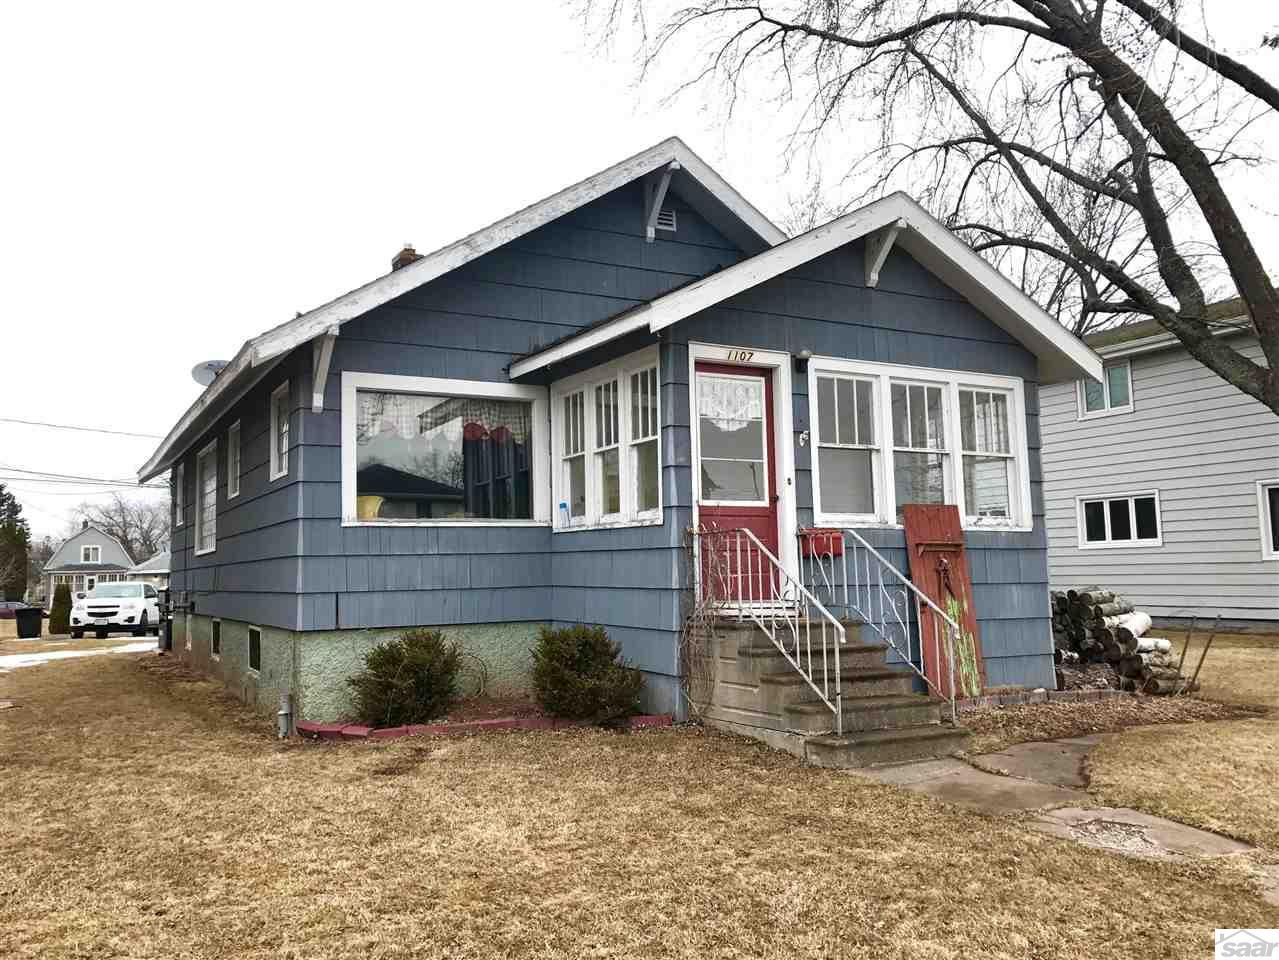 1107 N 21st St, Superior, WI 54880